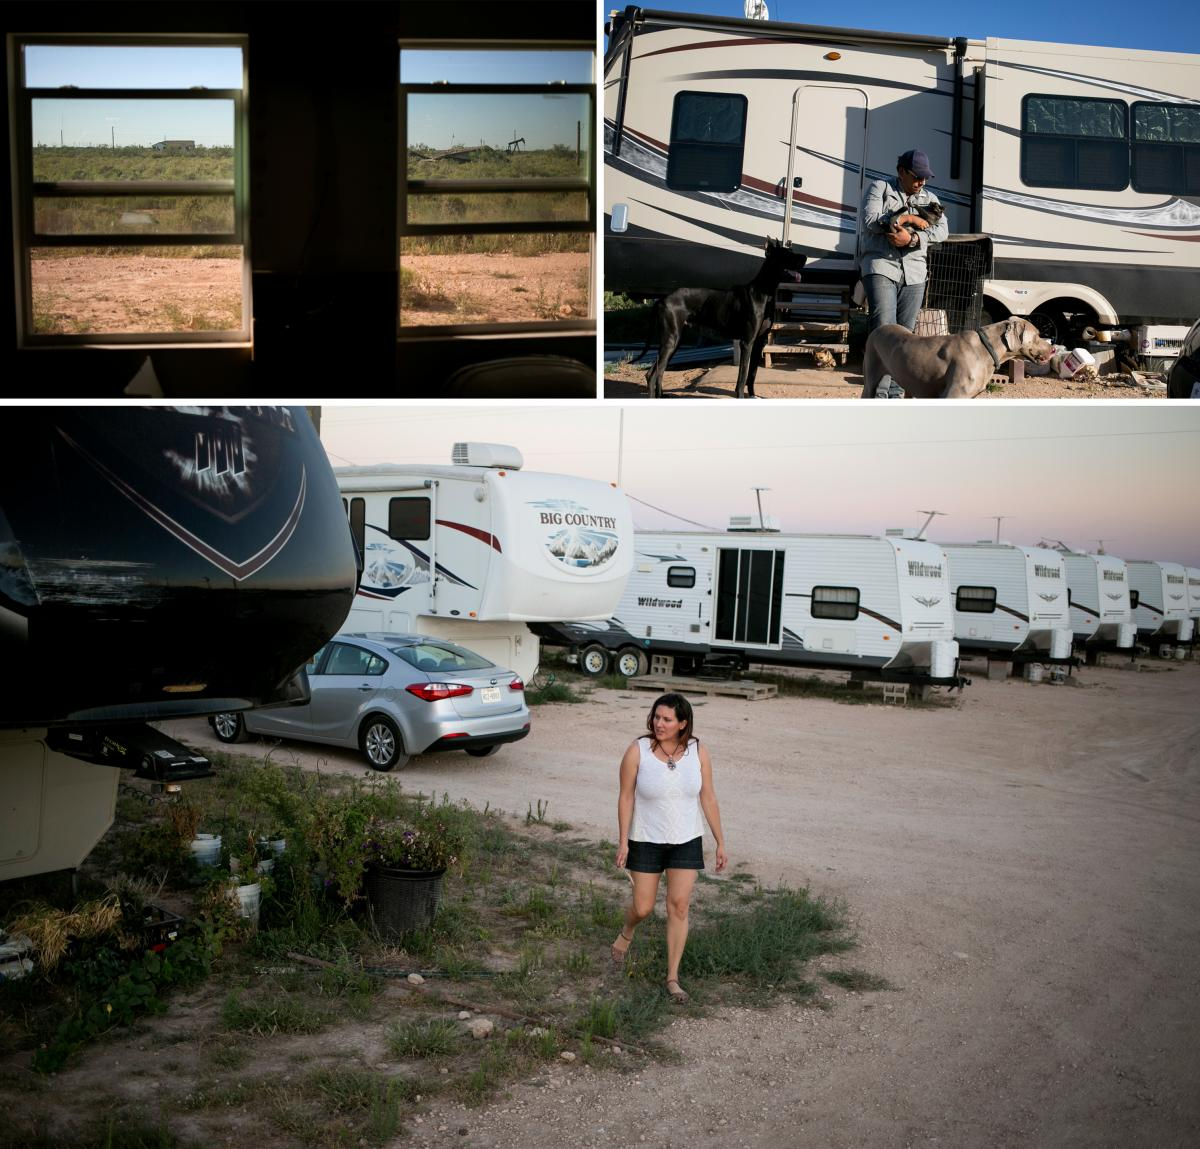 Jesse Murillo (top right) and Megan Newman (bottom) opened the Out West RV park, nestled between Midland and Odessa, as a long-term investment. Since opening the park, the couple have been living in an RV as they build their own home.